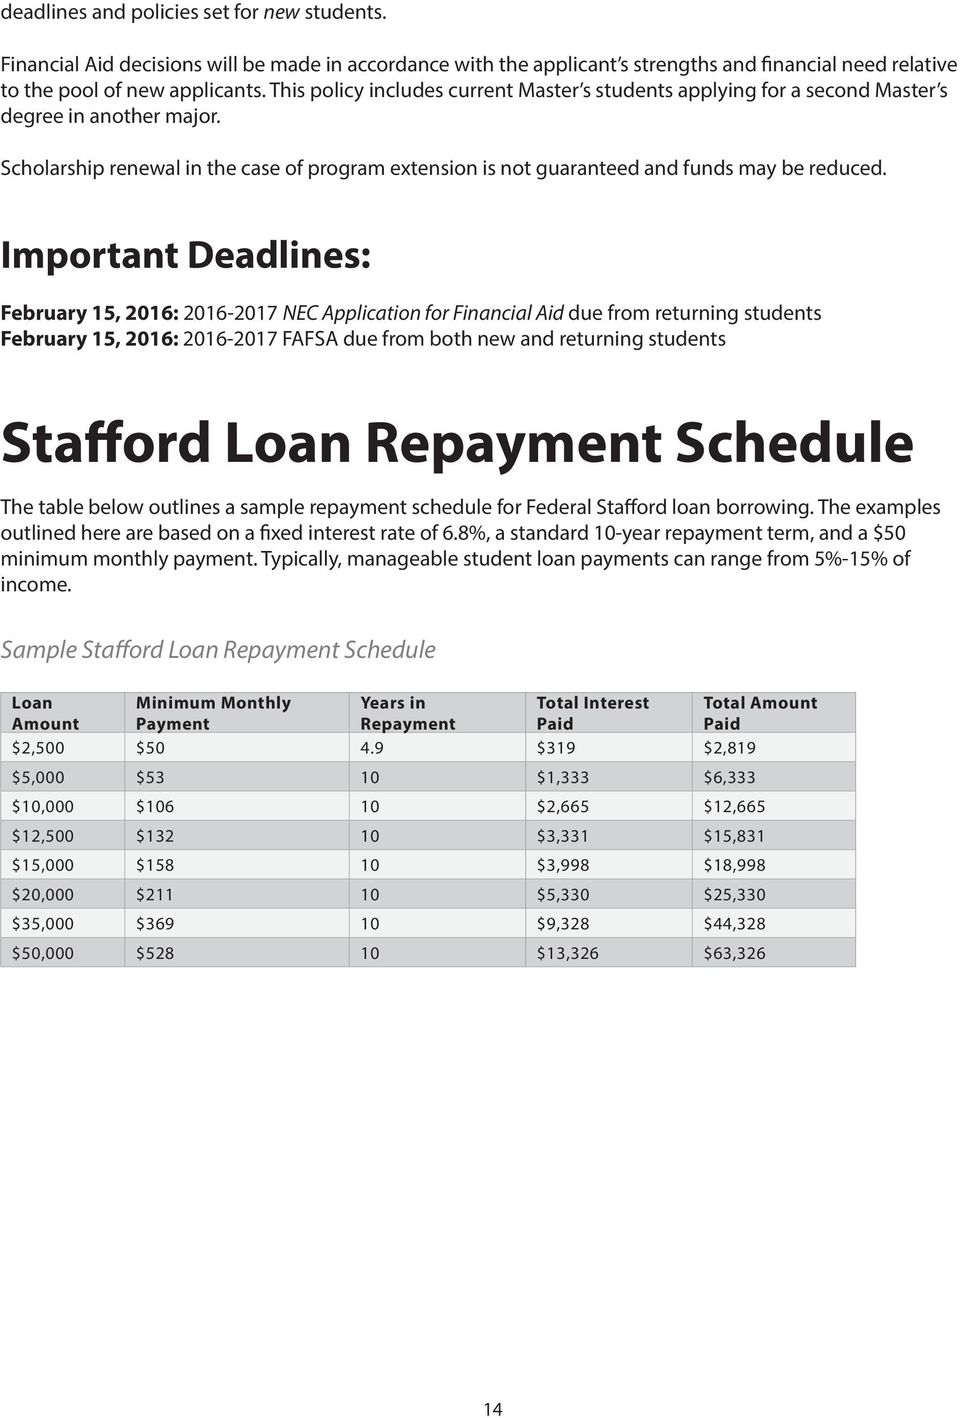 Important Deadlines: February 15, 2016: 2016-2017 NEC Application for Financial Aid due from returning students February 15, 2016: 2016-2017 FAFSA due from both new and returning students Stafford